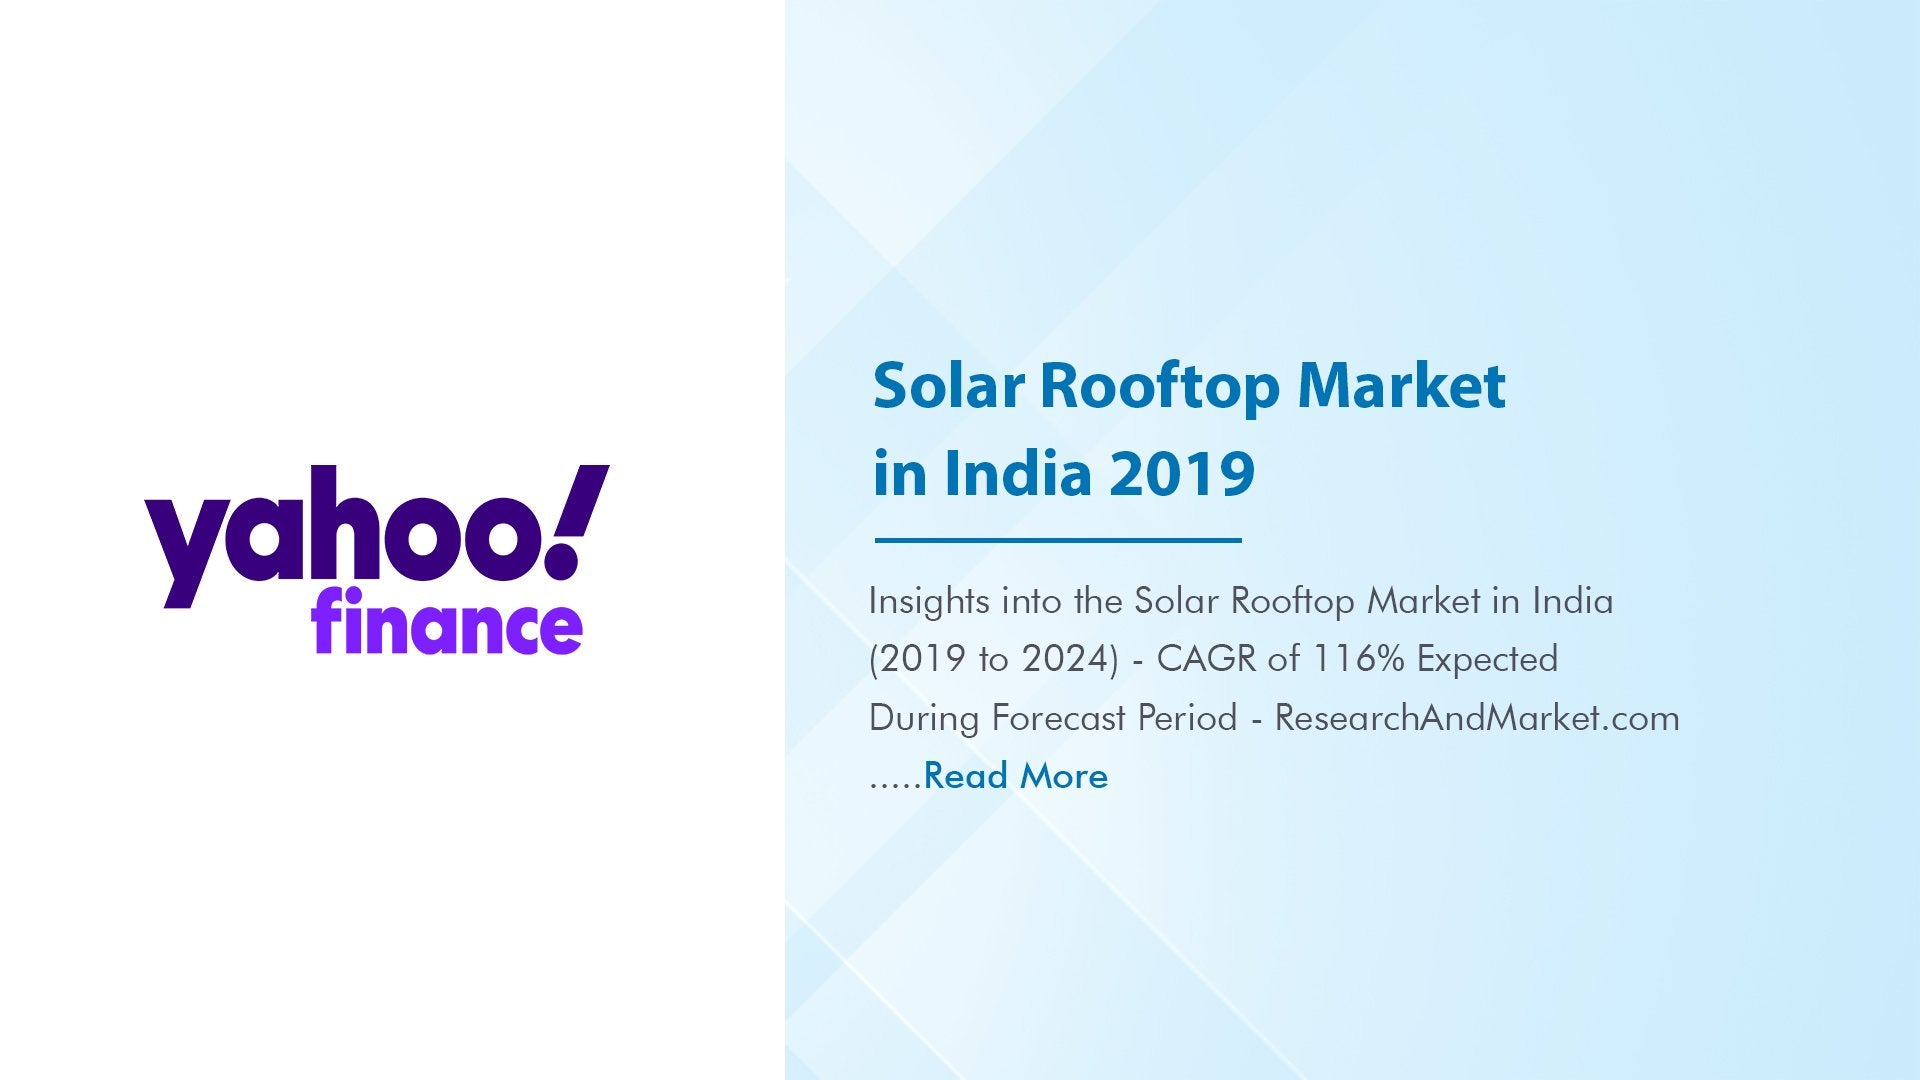 Insights into the Solar Rooftop Market in India (2019 to 2024)